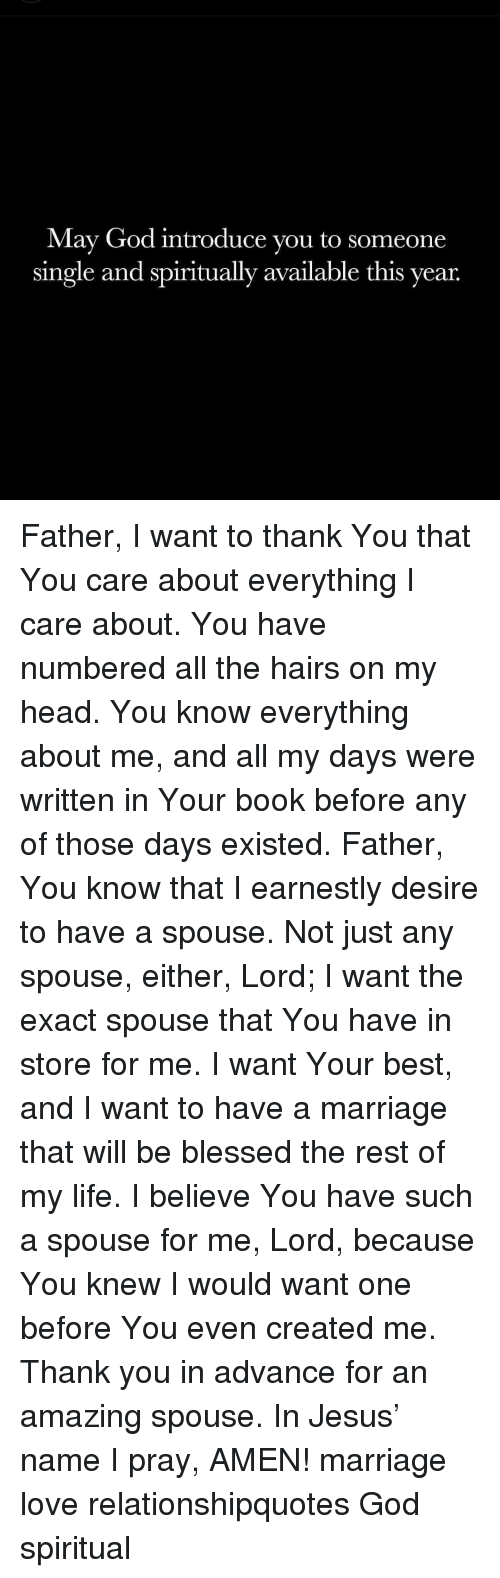 spouse: May God introduce you to someone  single and spiritually available this year. Father, I want to thank You that You care about everything I care about. You have numbered all the hairs on my head. You know everything about me, and all my days were written in Your book before any of those days existed. Father, You know that I earnestly desire to have a spouse. Not just any spouse, either, Lord; I want the exact spouse that You have in store for me. I want Your best, and I want to have a marriage that will be blessed the rest of my life. I believe You have such a spouse for me, Lord, because You knew I would want one before You even created me. Thank you in advance for an amazing spouse. In Jesus' name I pray, AMEN! marriage love relationshipquotes God spiritual